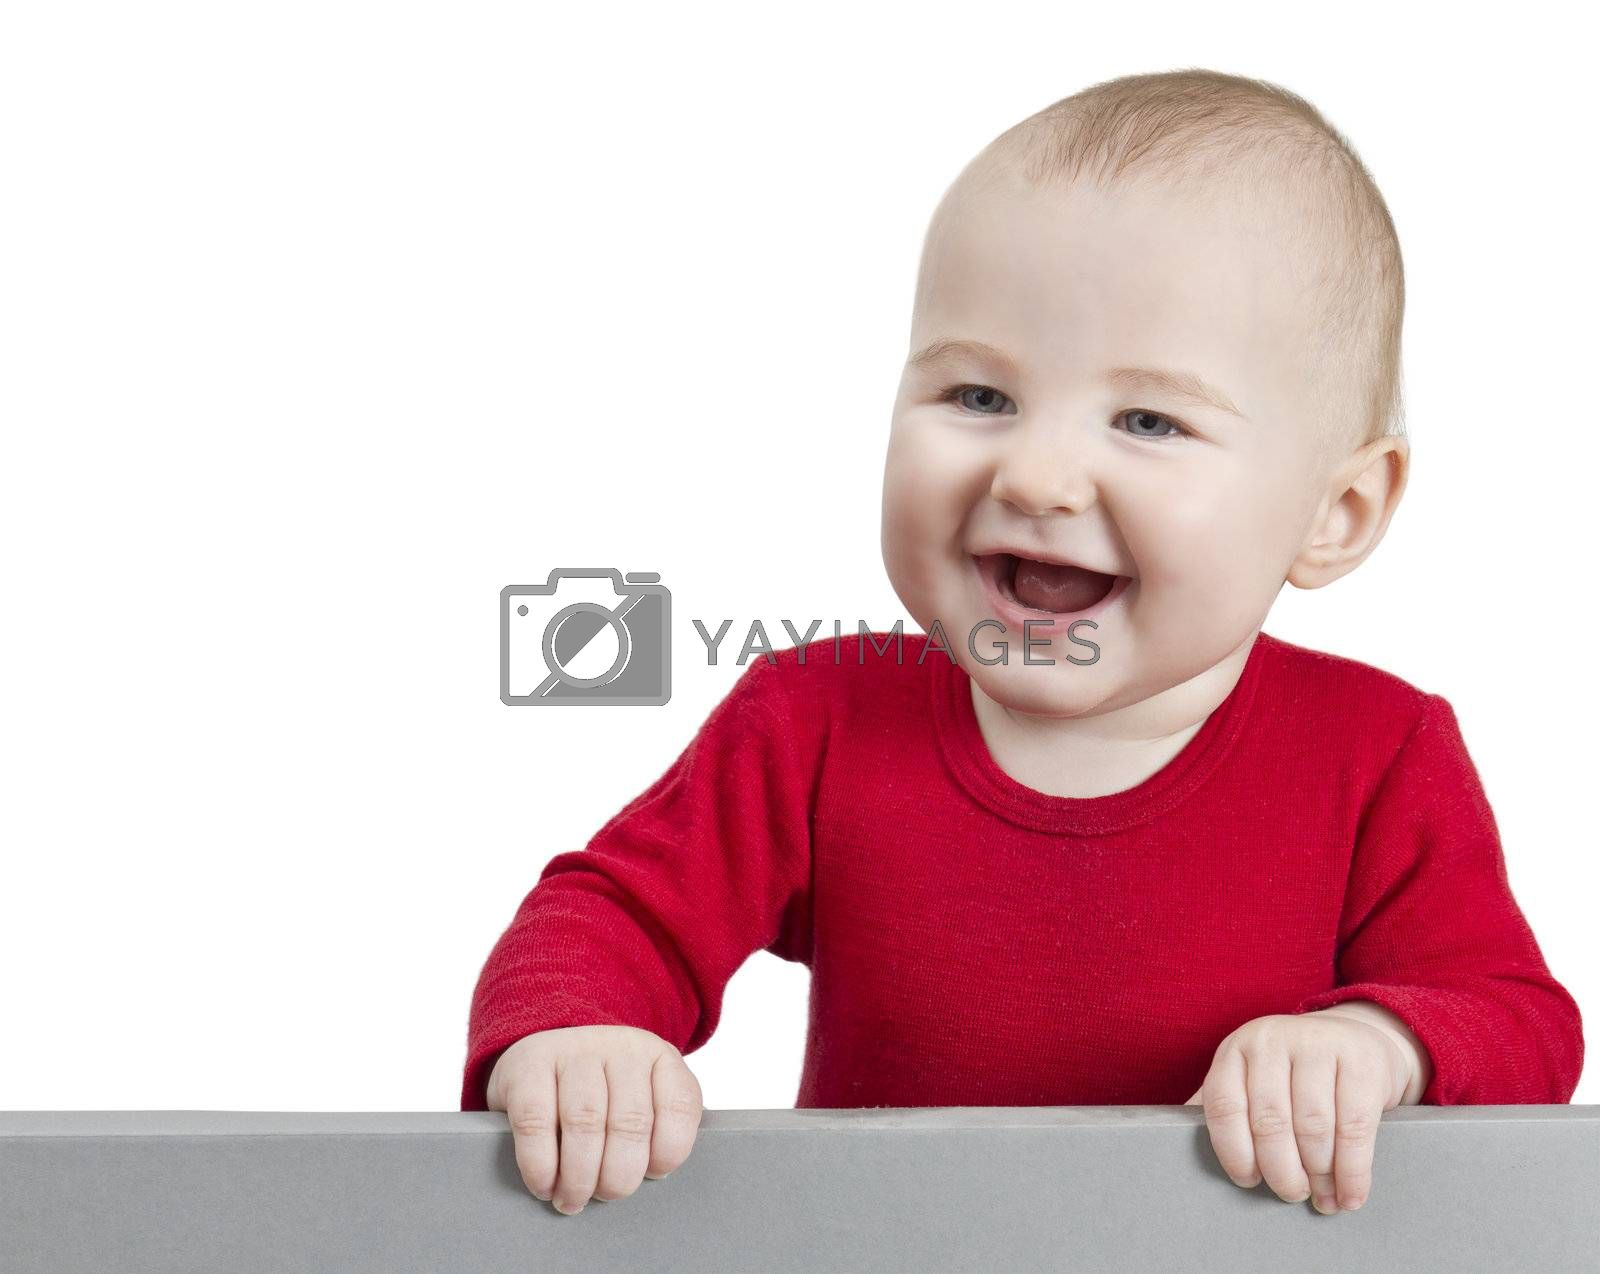 young child with red shirt holding shield. isolate on white background